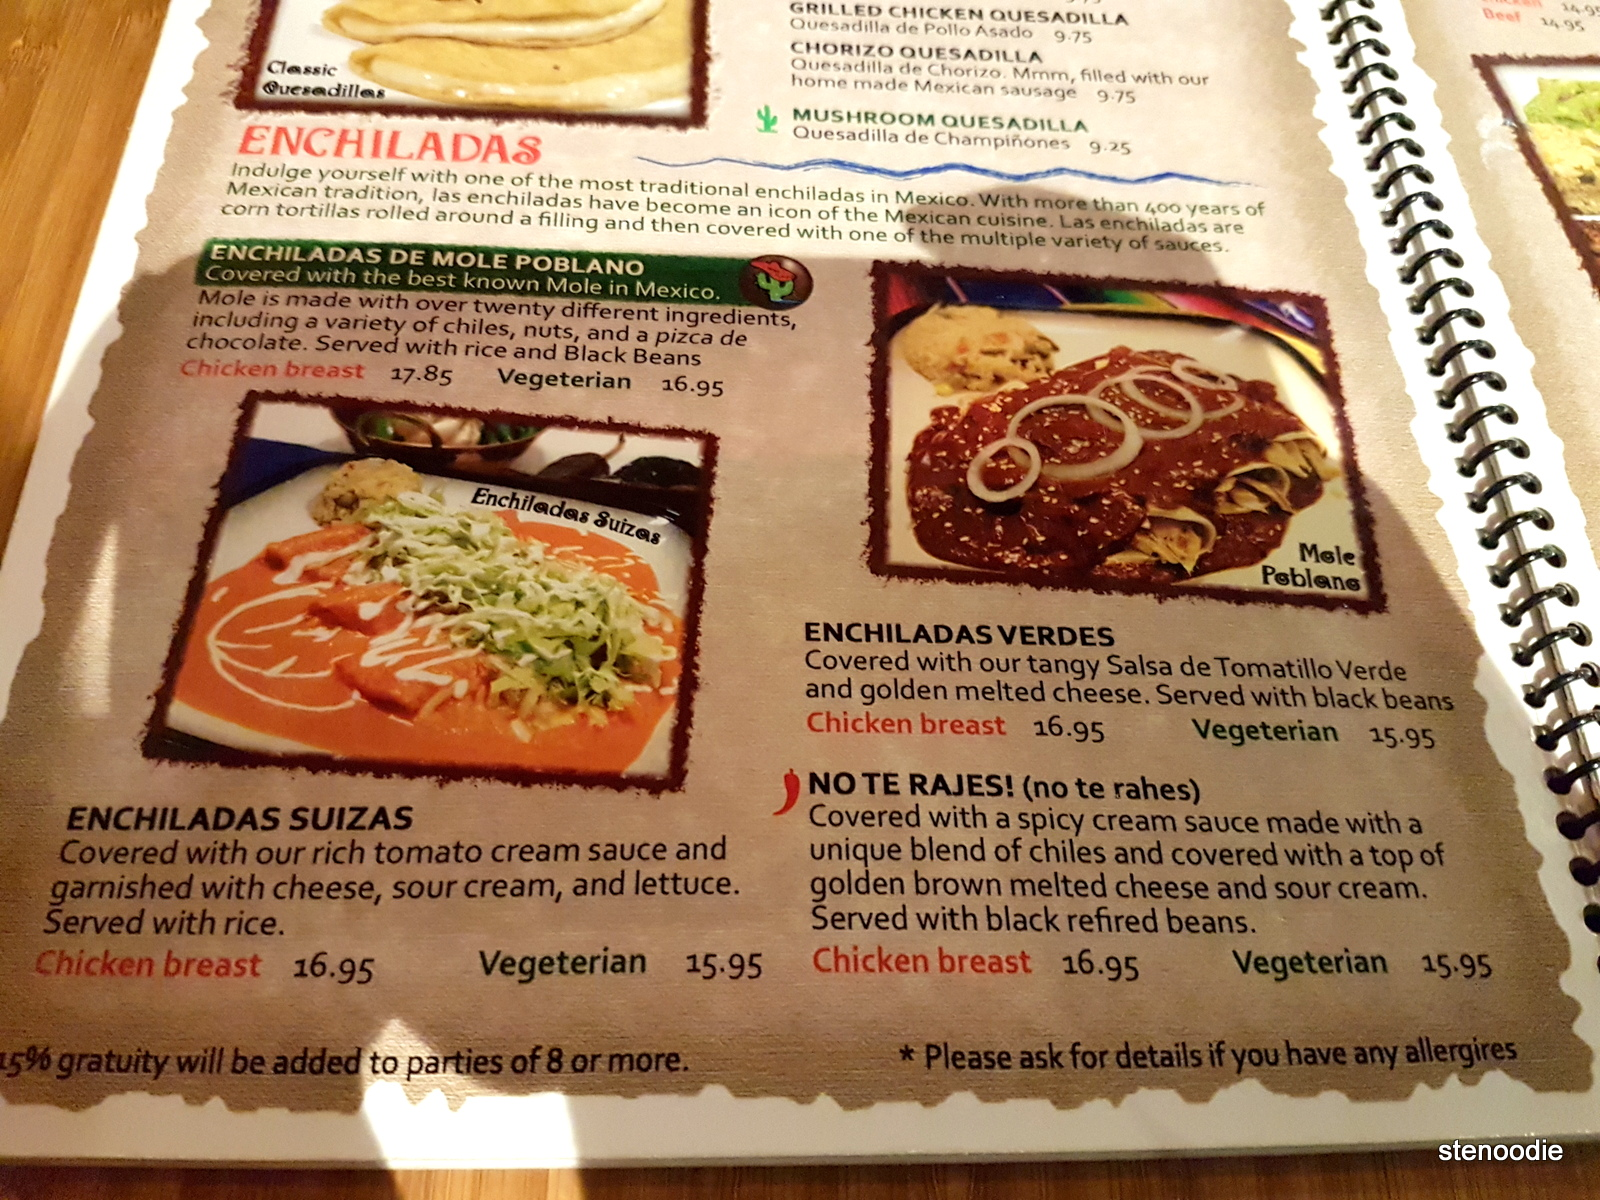 La Taquizza enchiladas menu